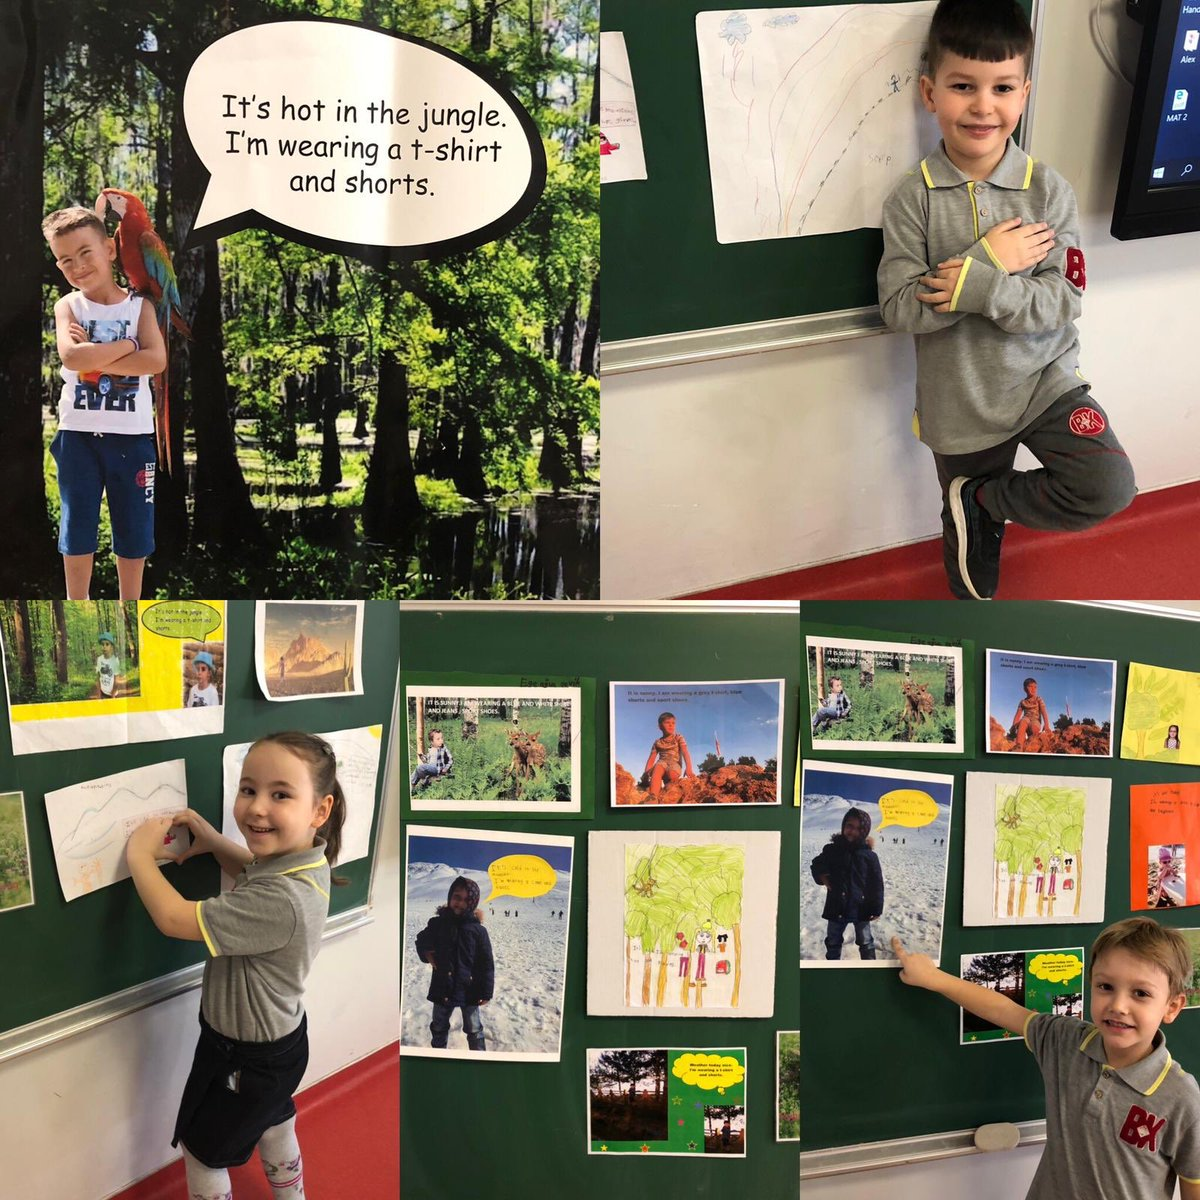 Our 1st graders made a presentation by using posters they made about what they should wear for the jungle, desert and the mountains. 🌴🌵🏔 @BK_Luleburgaz @MrsGecays @DuyguPeran @kivancdizman @ezgibesir